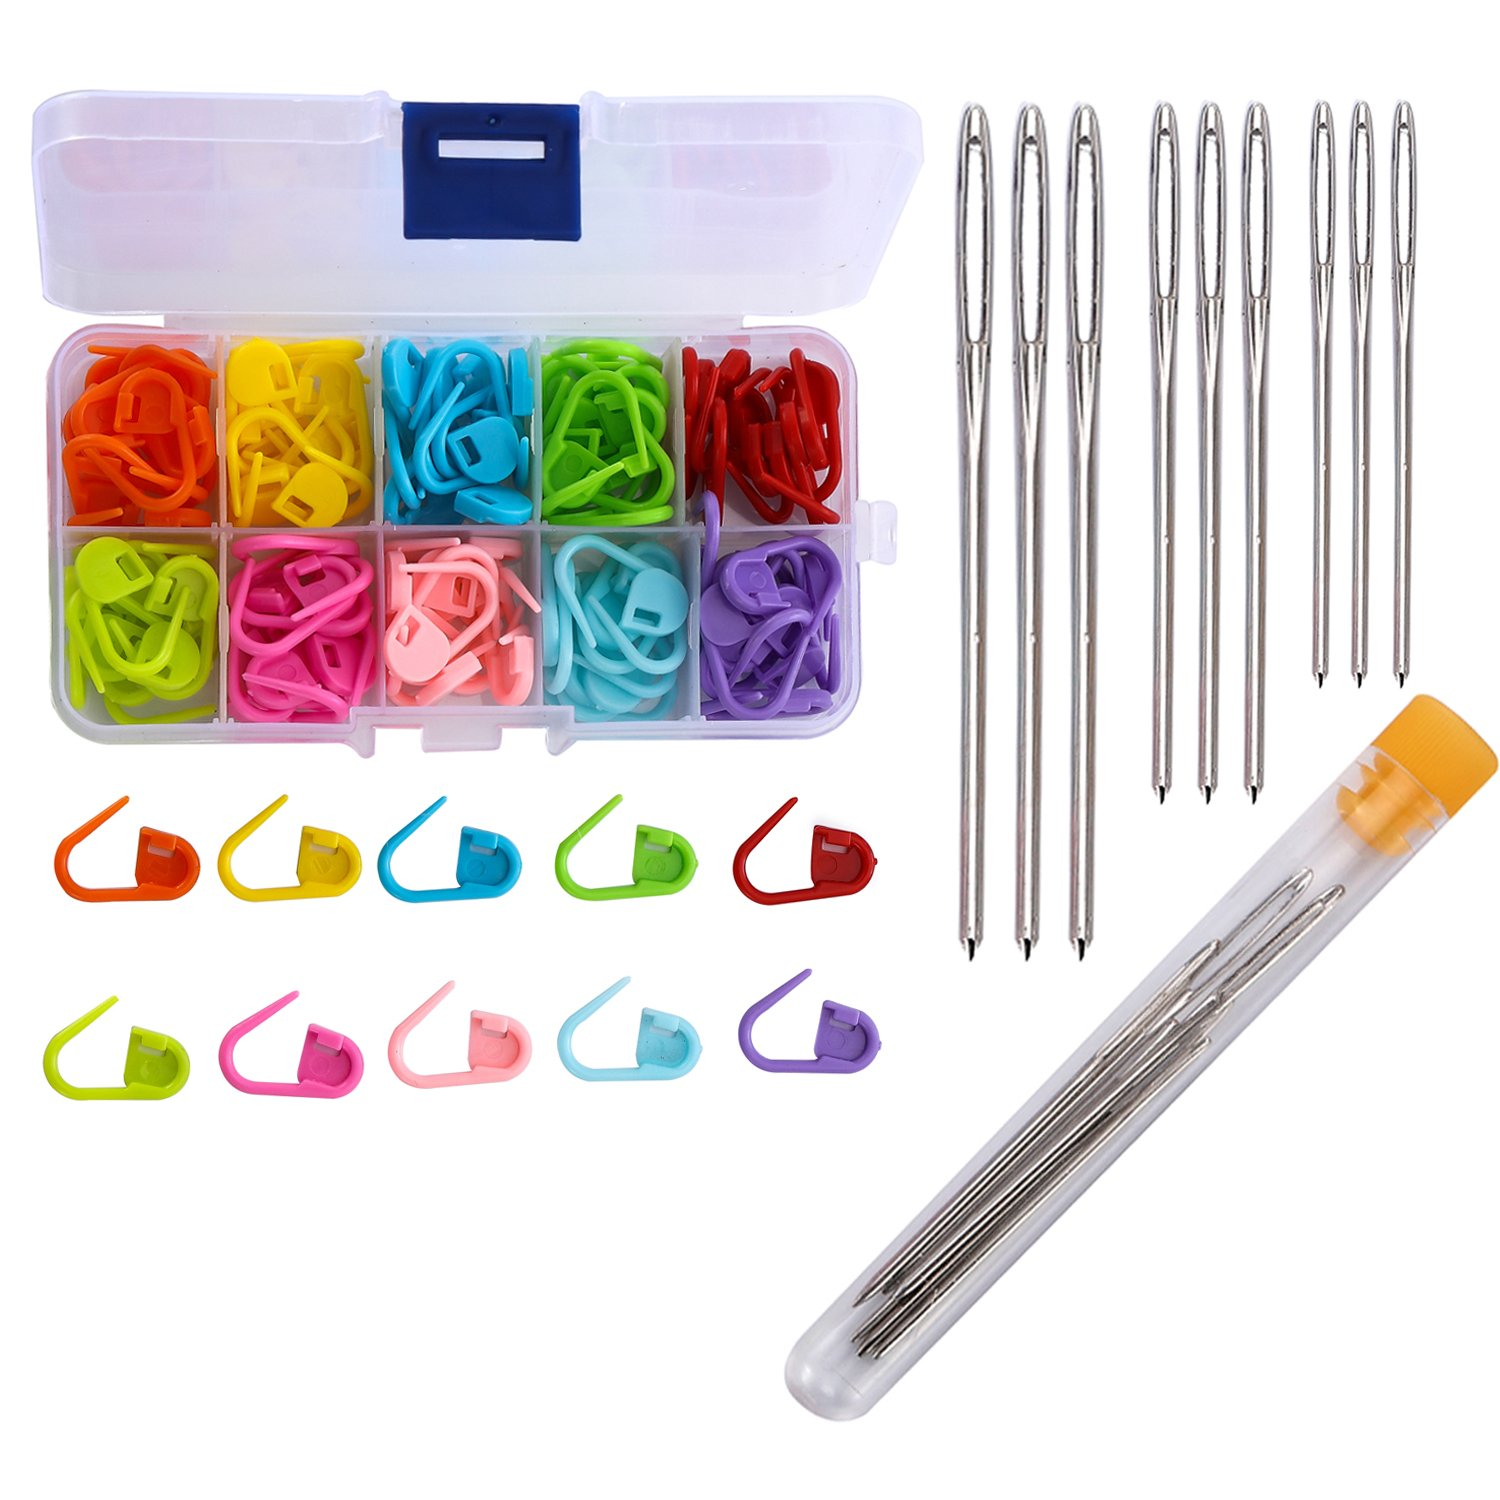 Maosifang 120 Locking Stitch Markers Knitting Counter and 9 Large-Eye Blunt Quilting Yarn Sewing Tapestry Darning Crafting Weaving Stringing Needles, 3 sizes Needles and Counter